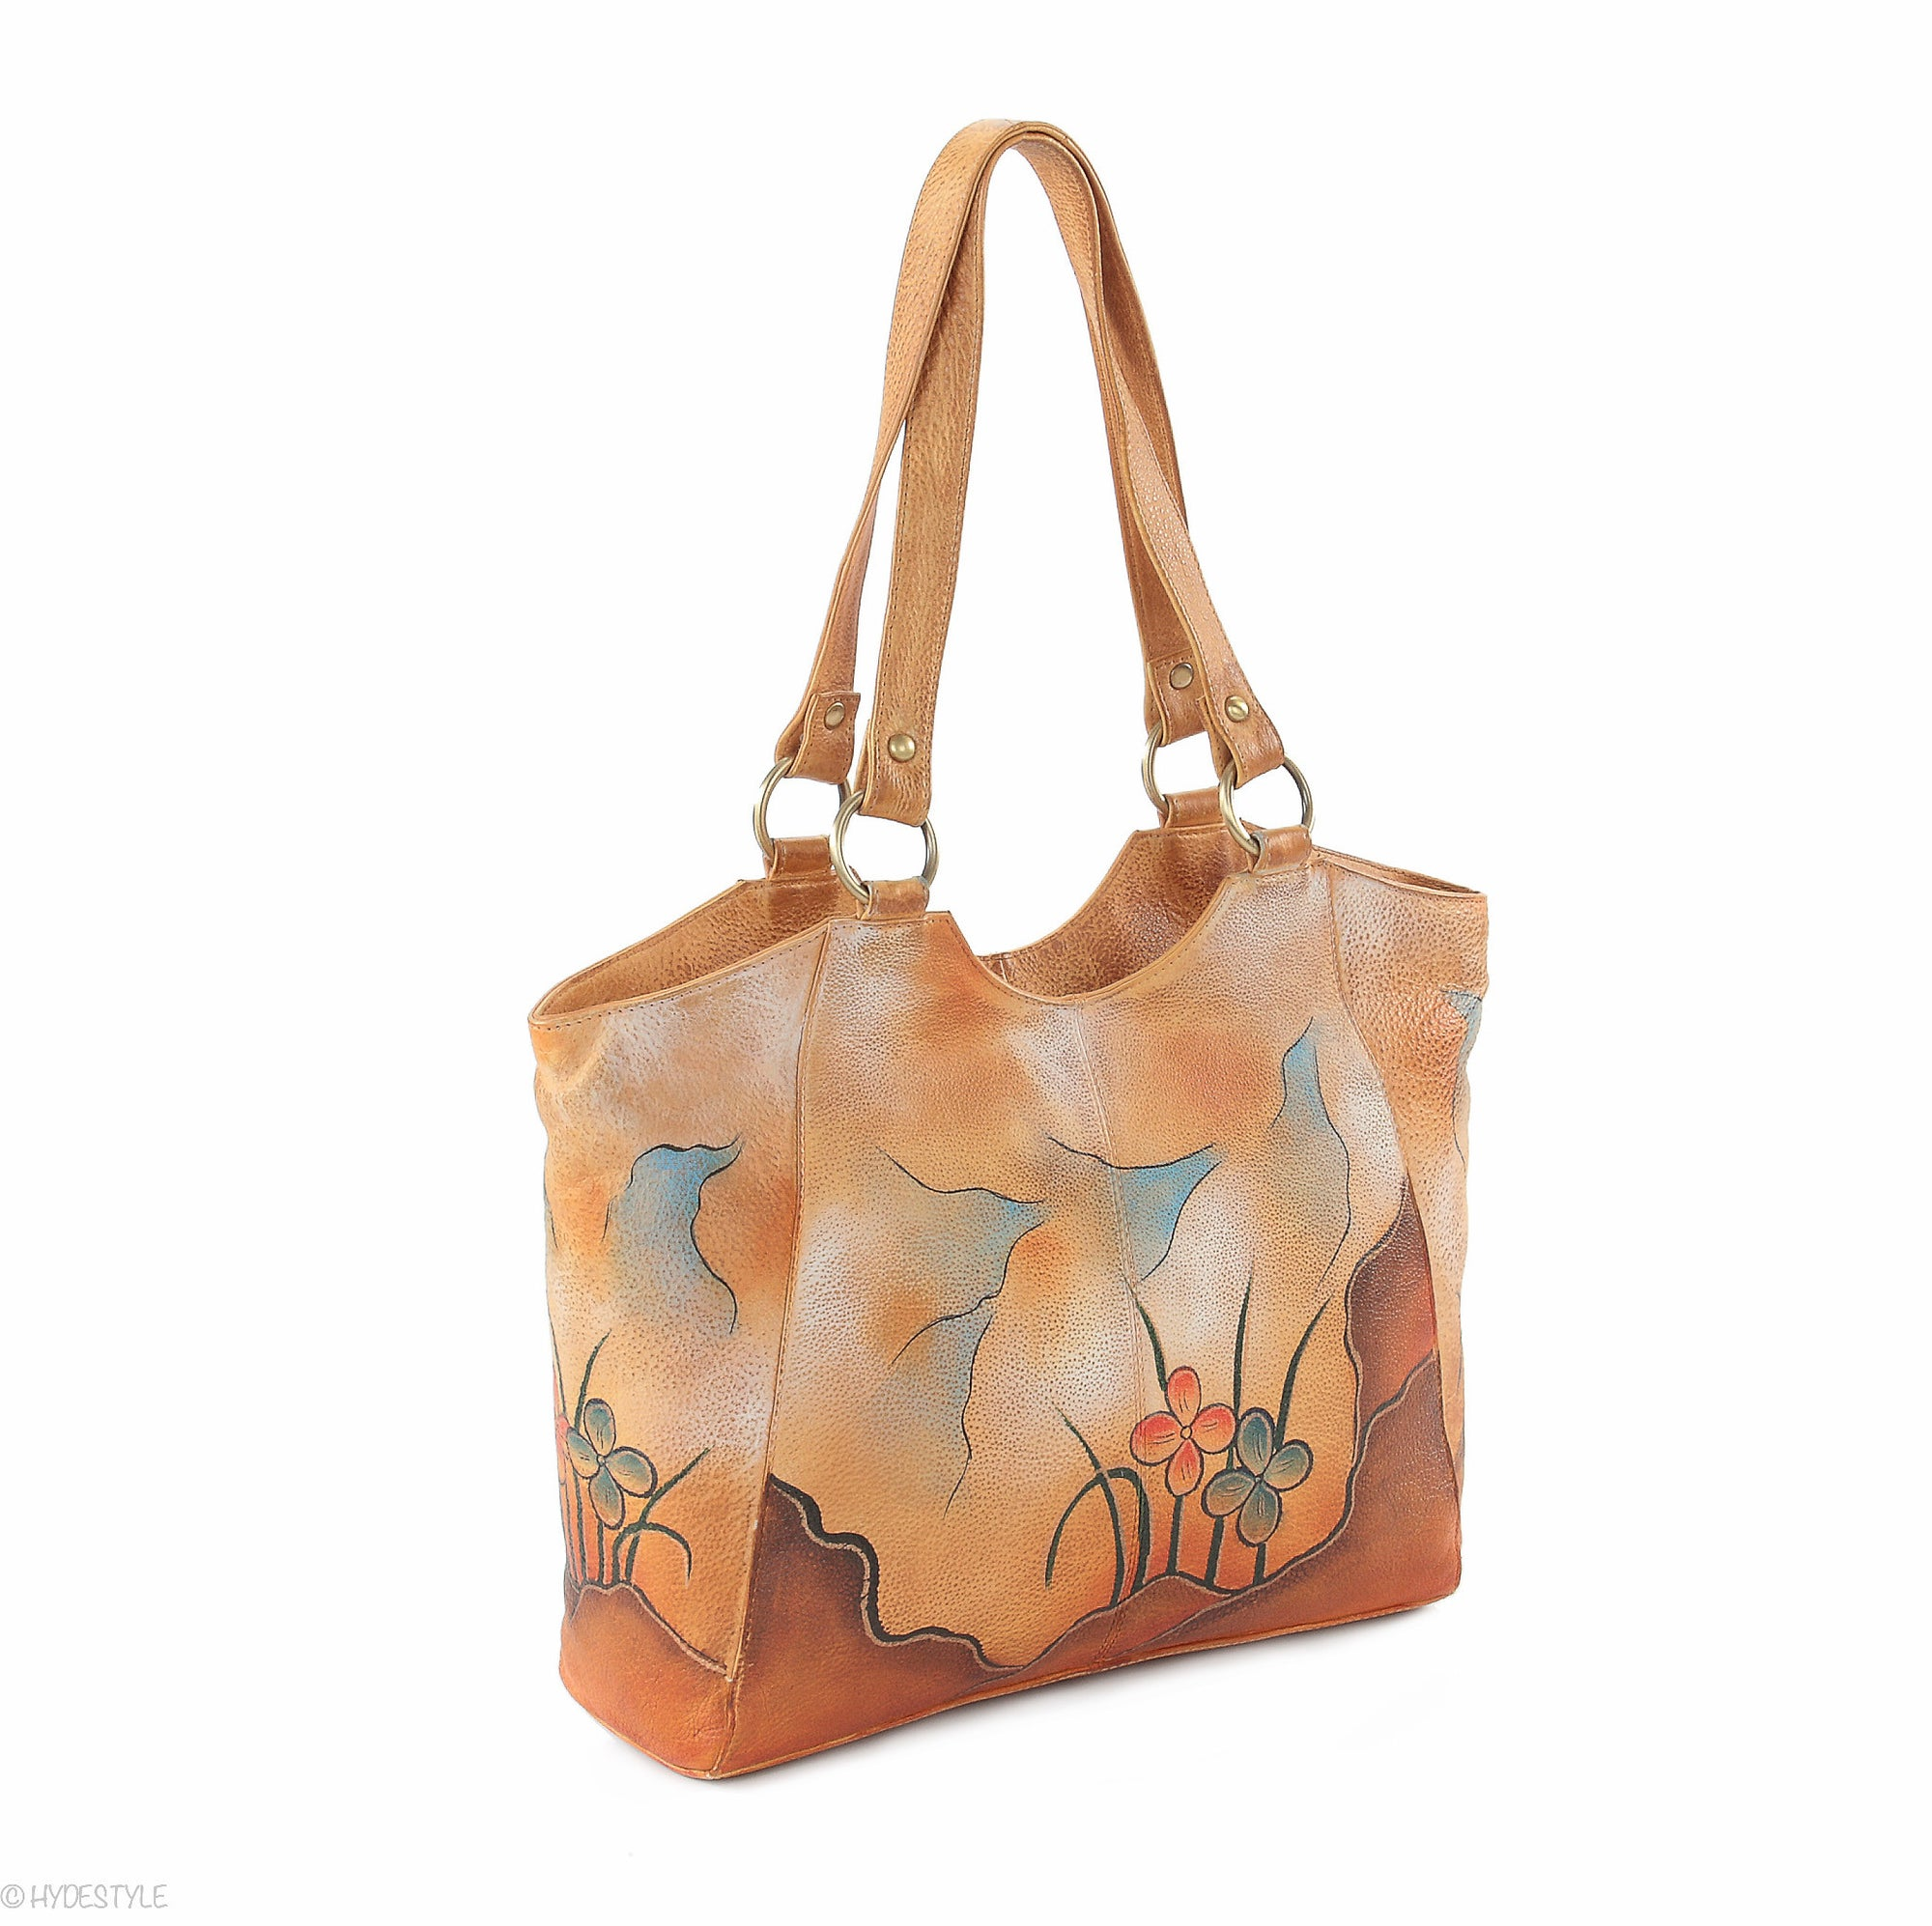 Picta Manu hand painted leather shopper bag #LB20 Tower Bridge